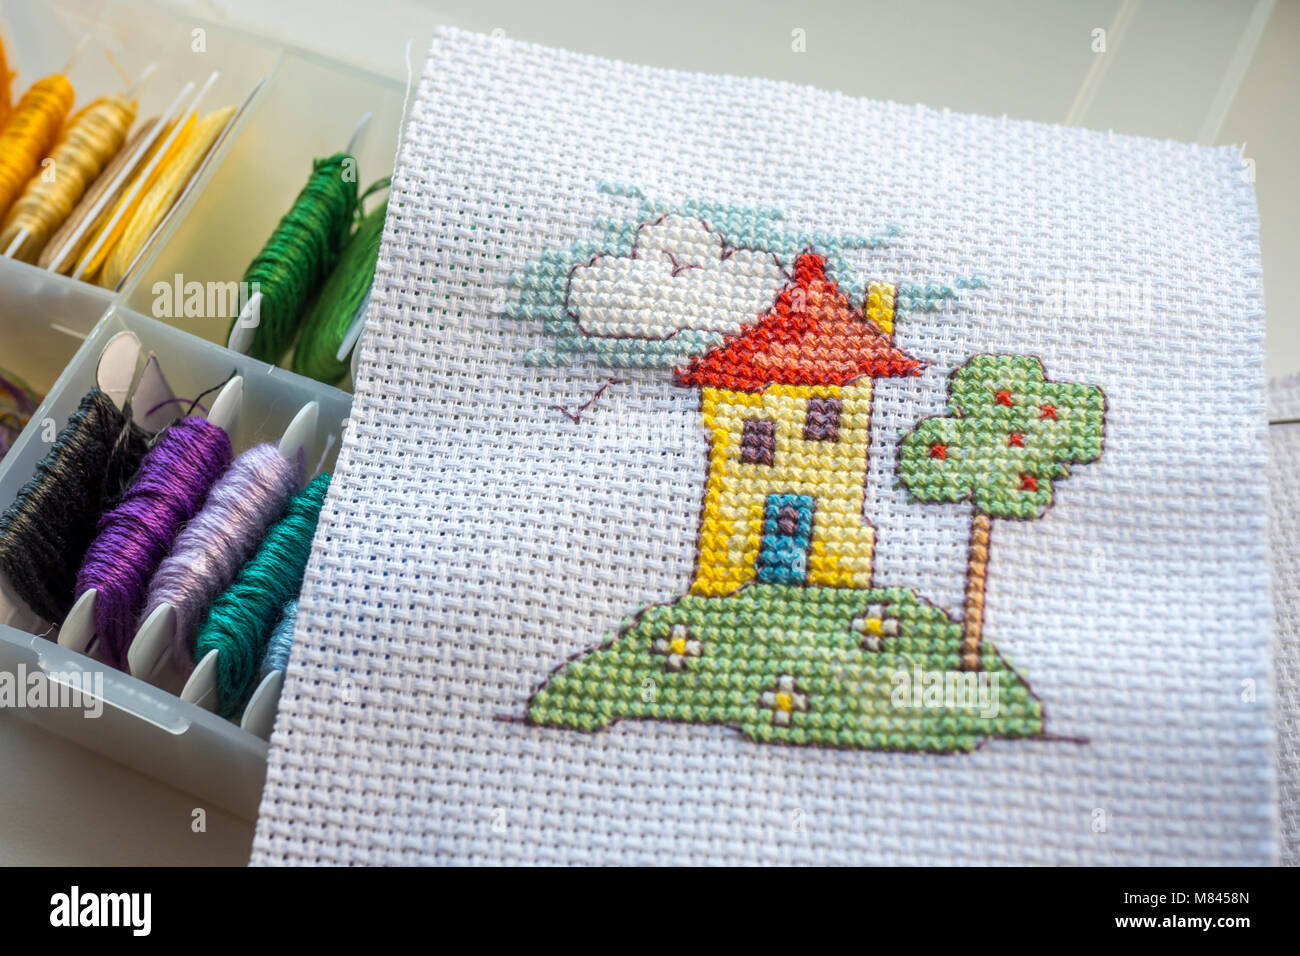 Embroidery Threads For Cross Stitch In A Storage Box With Completed Cross  Stitch   Stock Image